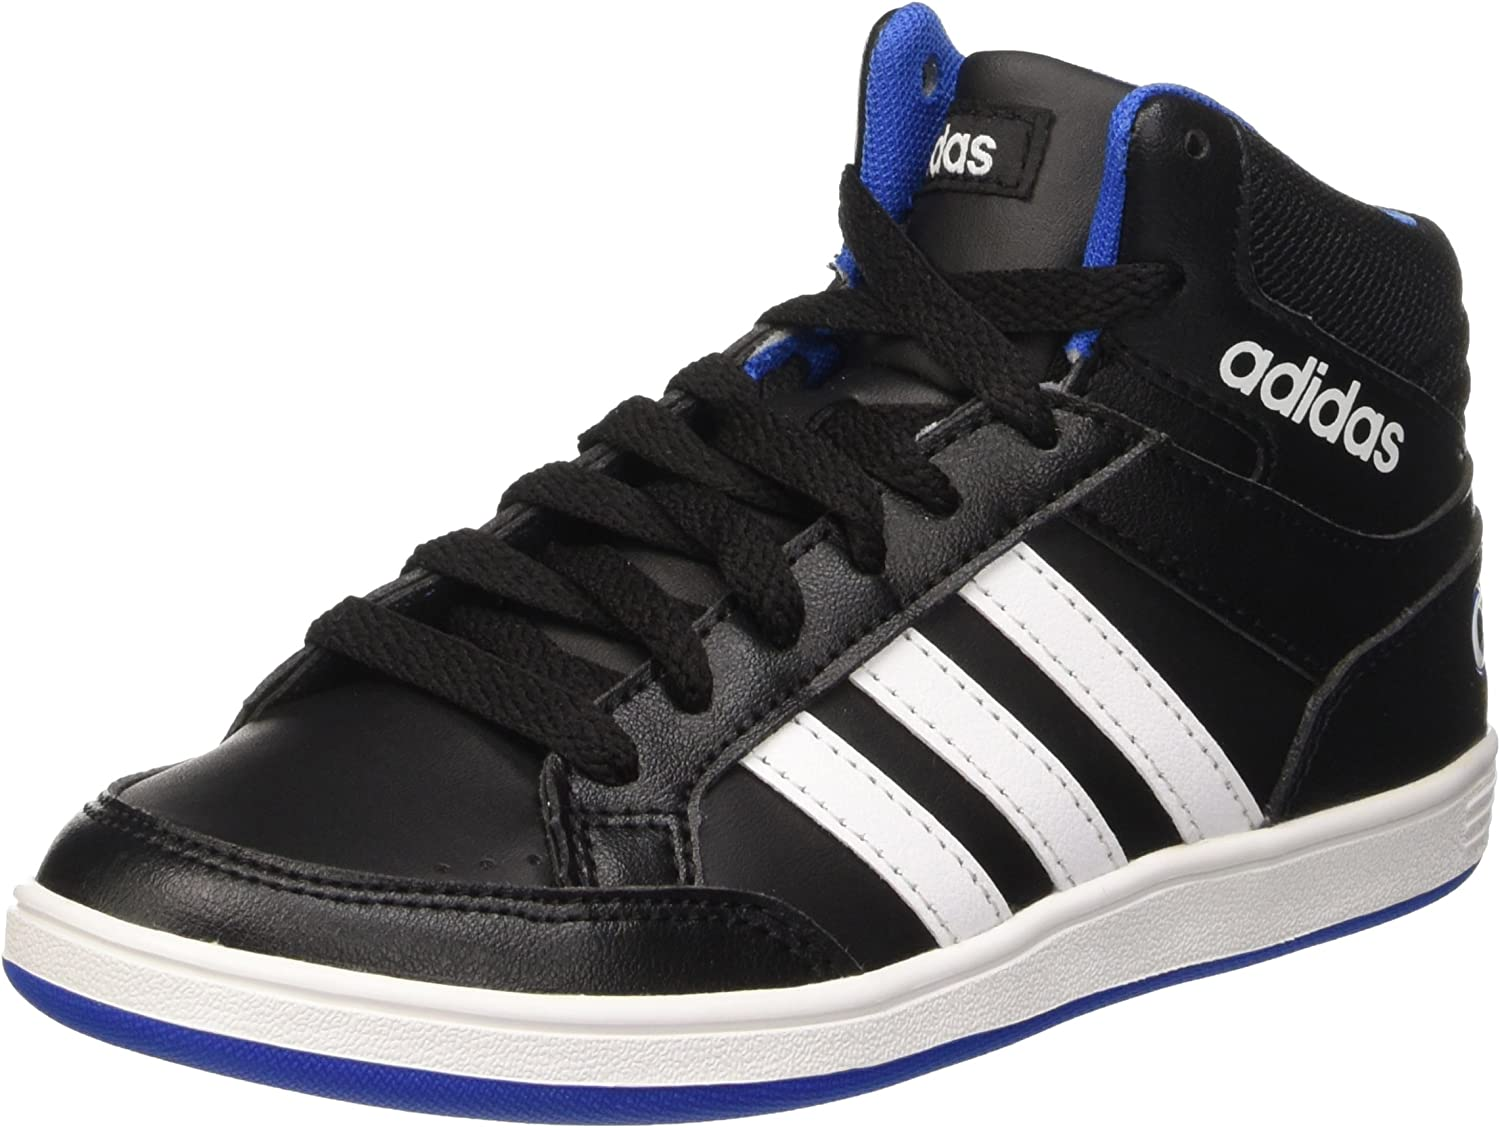 Adidas Hoops Mid K, Men's Derby Lace-up